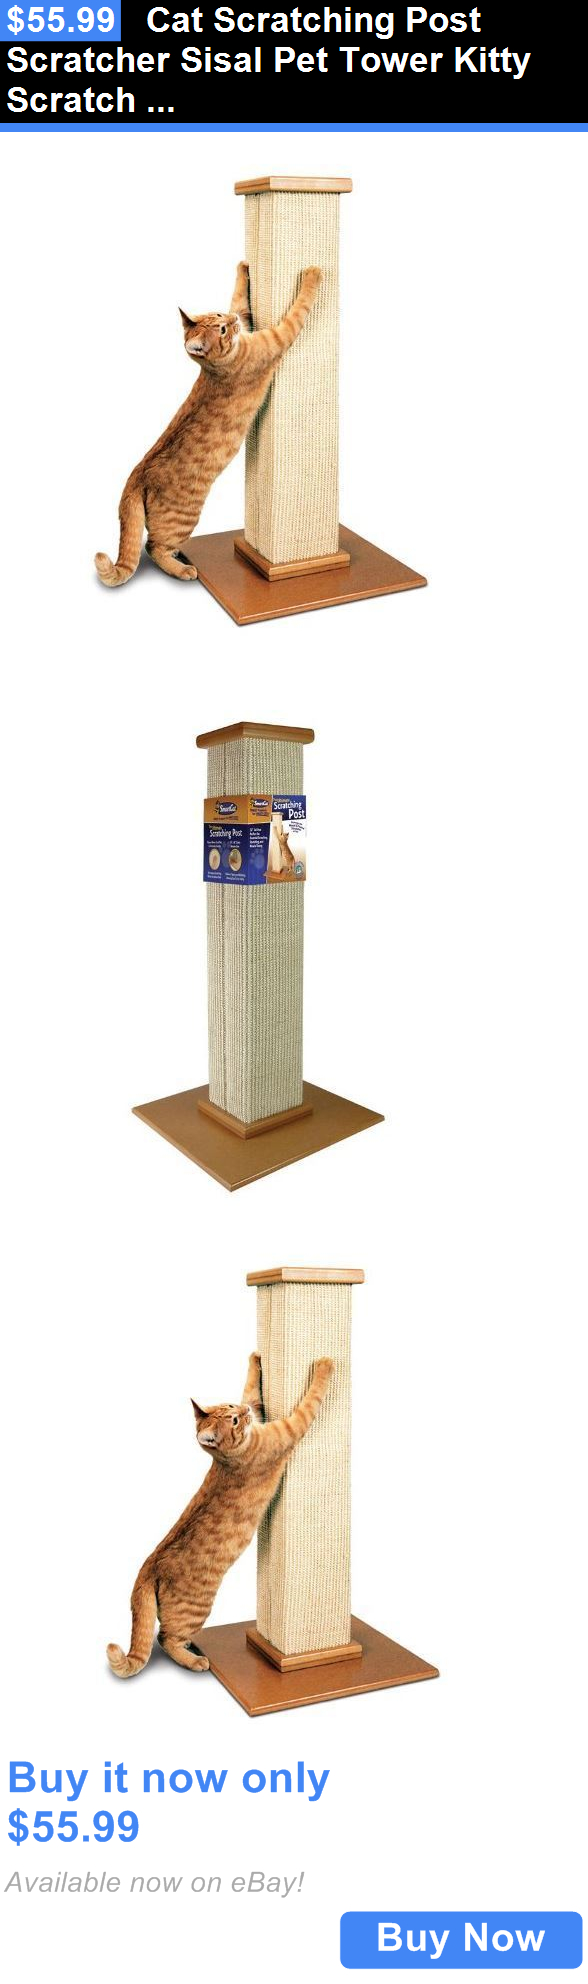 Animals Cats: Cat Scratching Post Scratcher Sisal Pet Tower Kitty Scratch Toy Play Kitten Tree BUY IT NOW ONLY: $55.99